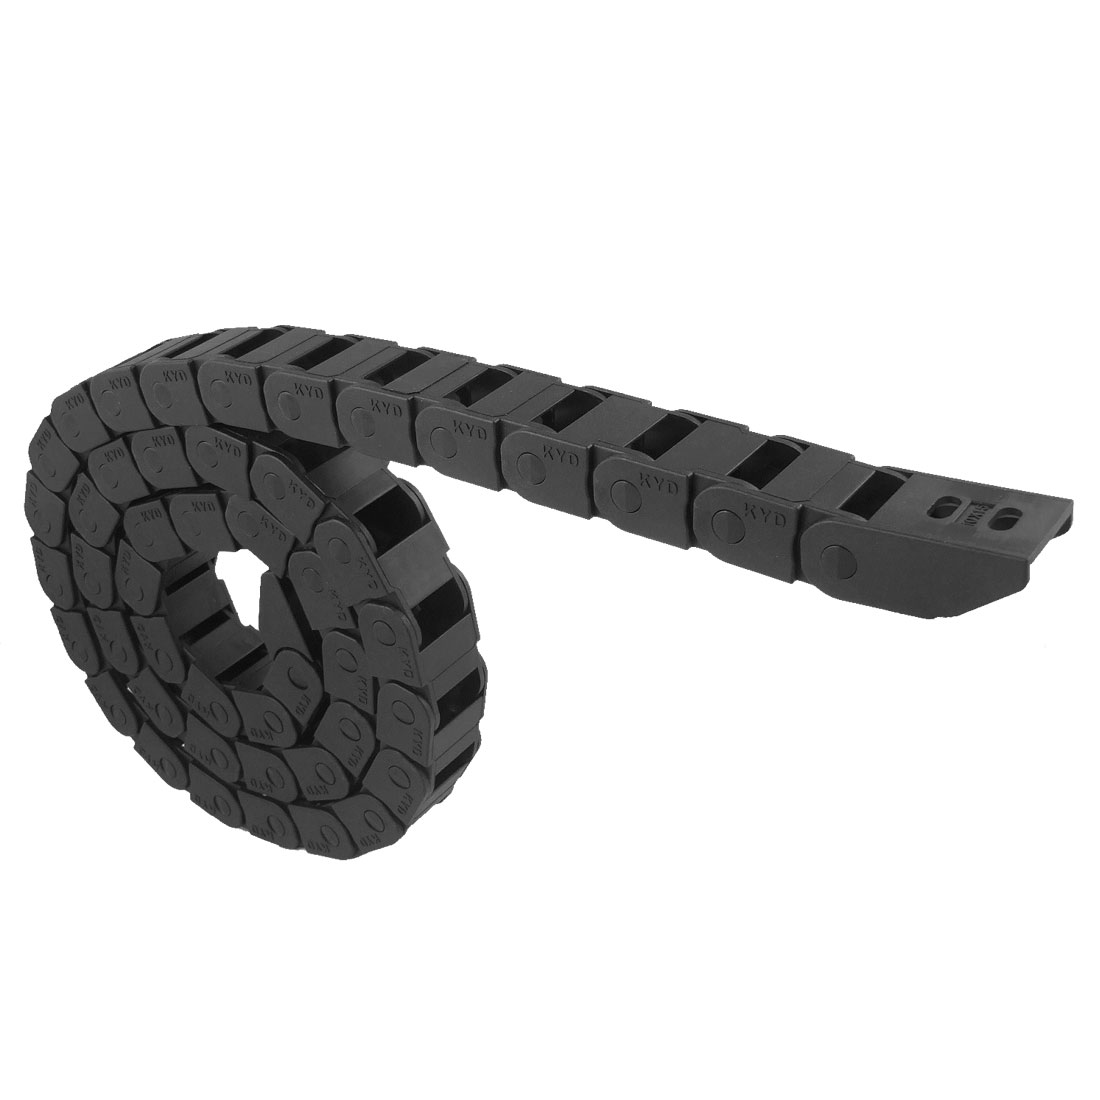 1M Long Black Plastic Towline Cable Drag Chain 10 x 15mm